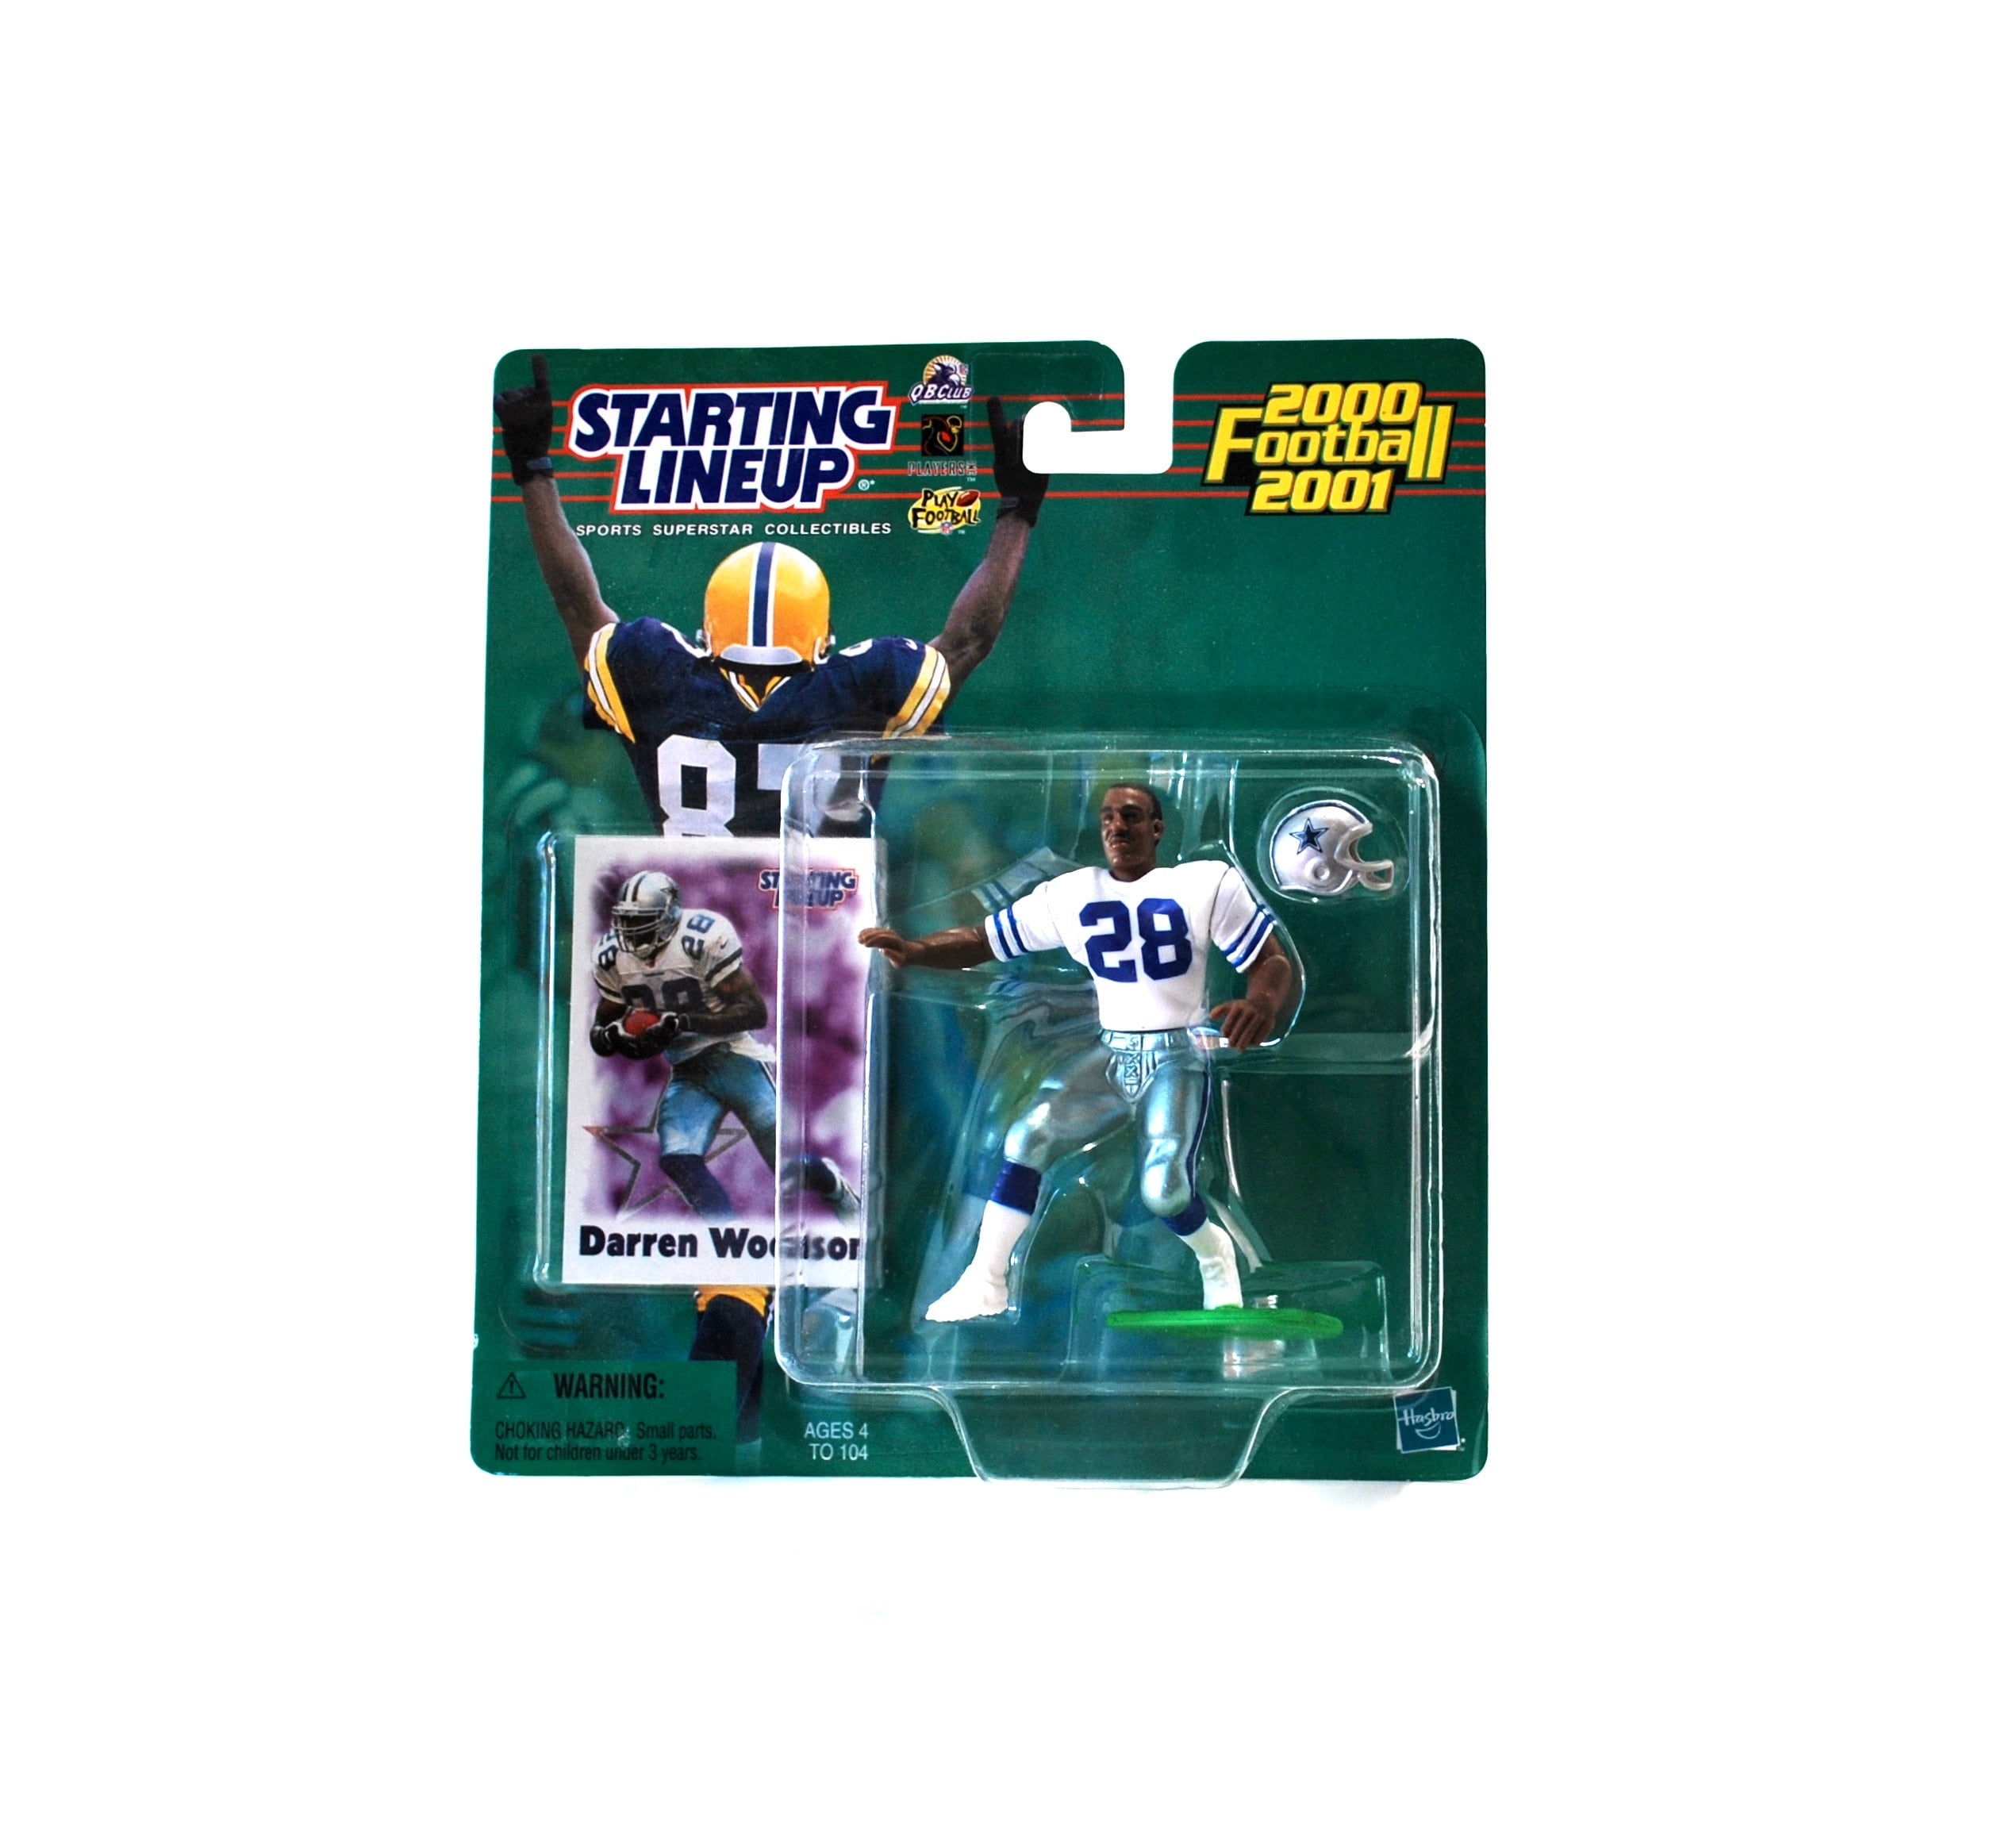 ROOKIE 2000-2001 HASBRO STARTING LINEUP DARREN WOODSON of the DALLAS COWBOYS